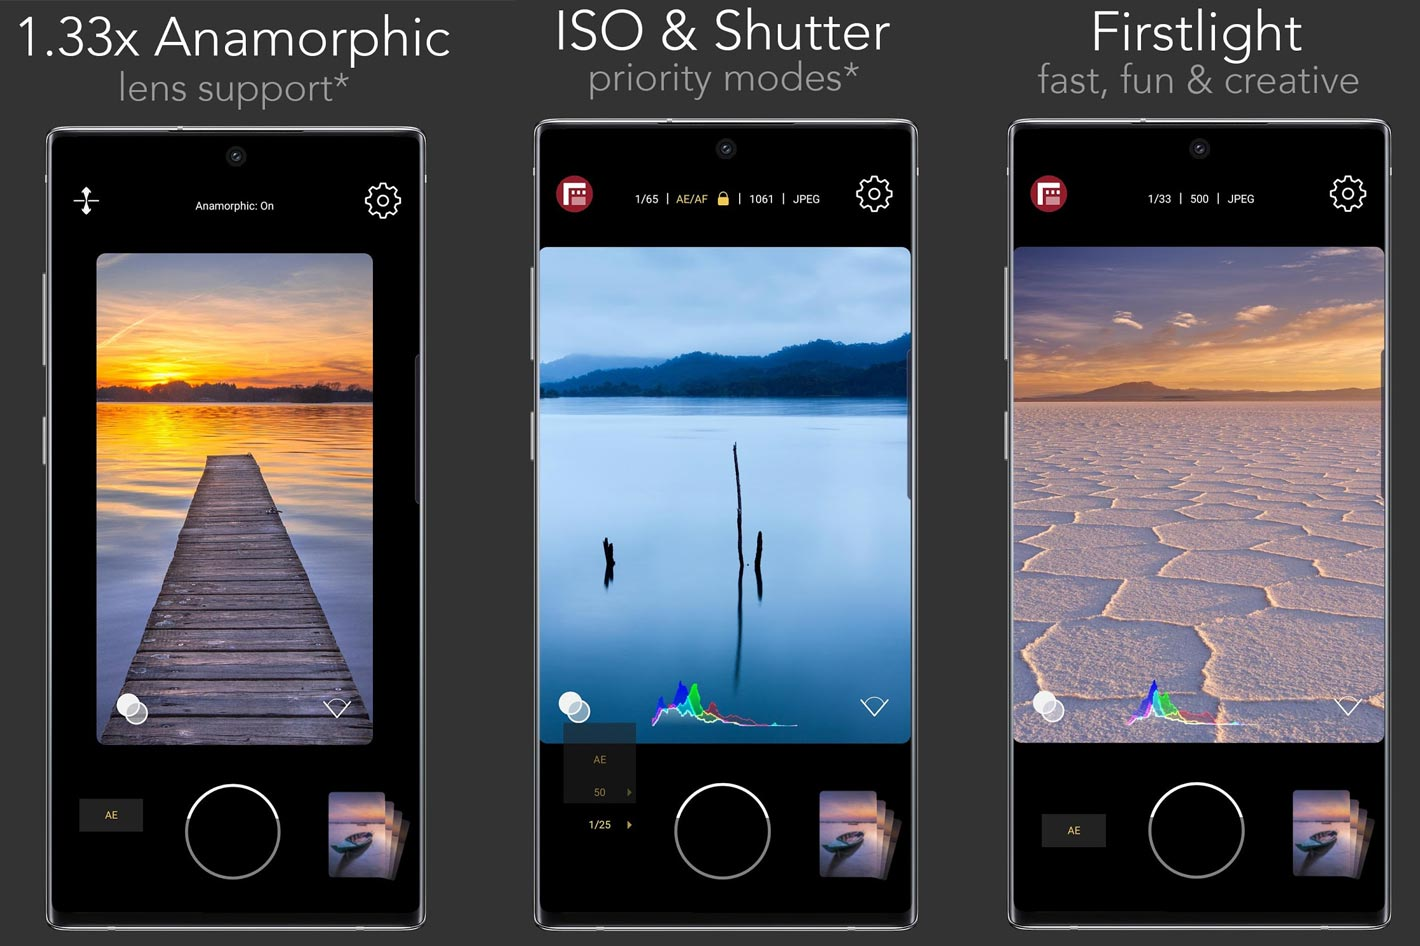 FiLMiC Firstlight for iOS and Android gets update